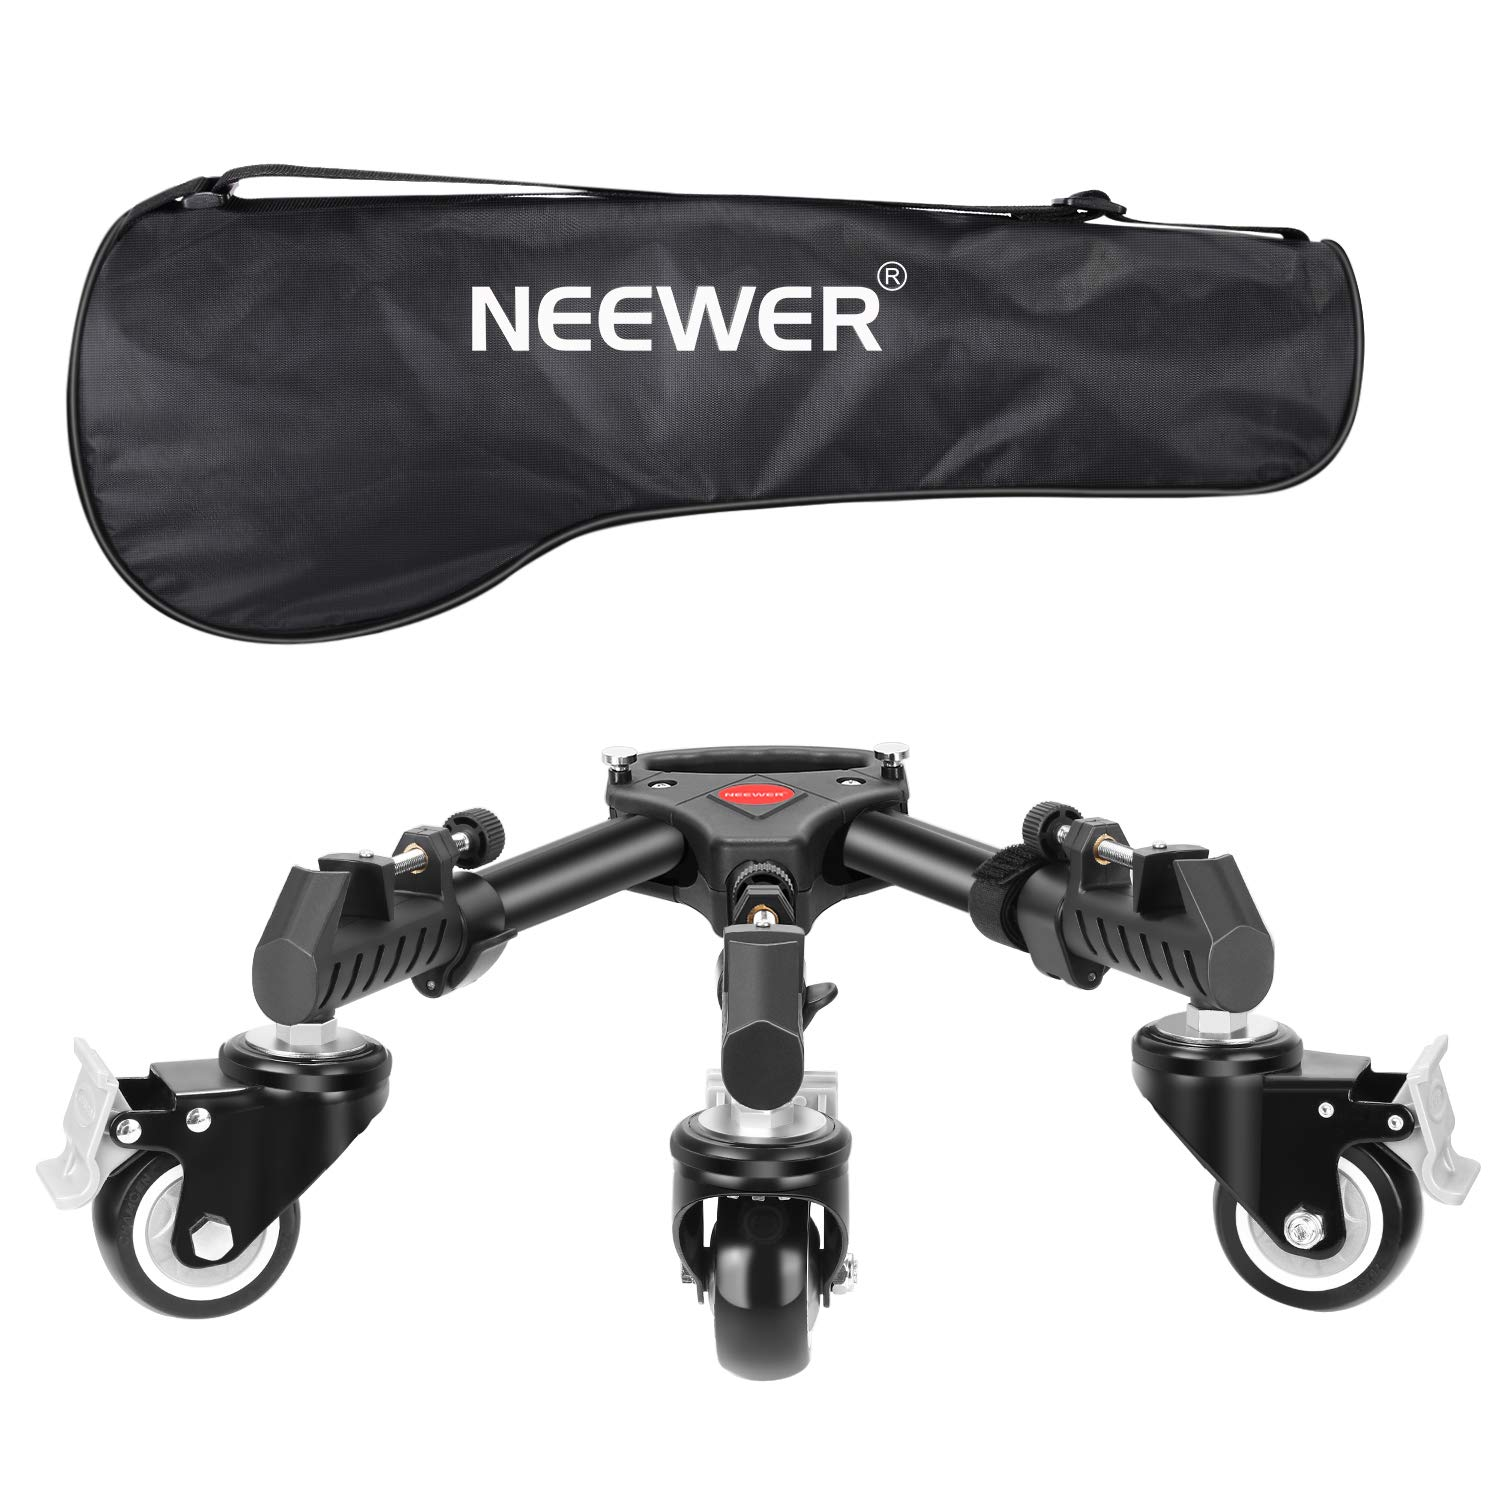 Neewer Photography Tripod Dolly, Heavy Duty with Larger 3-inch Rubber Wheels, Adjustable Leg Mounts and Carry Bag for Tripods, Light Stands for Photo Video Lighting, Load up to 50 pounds